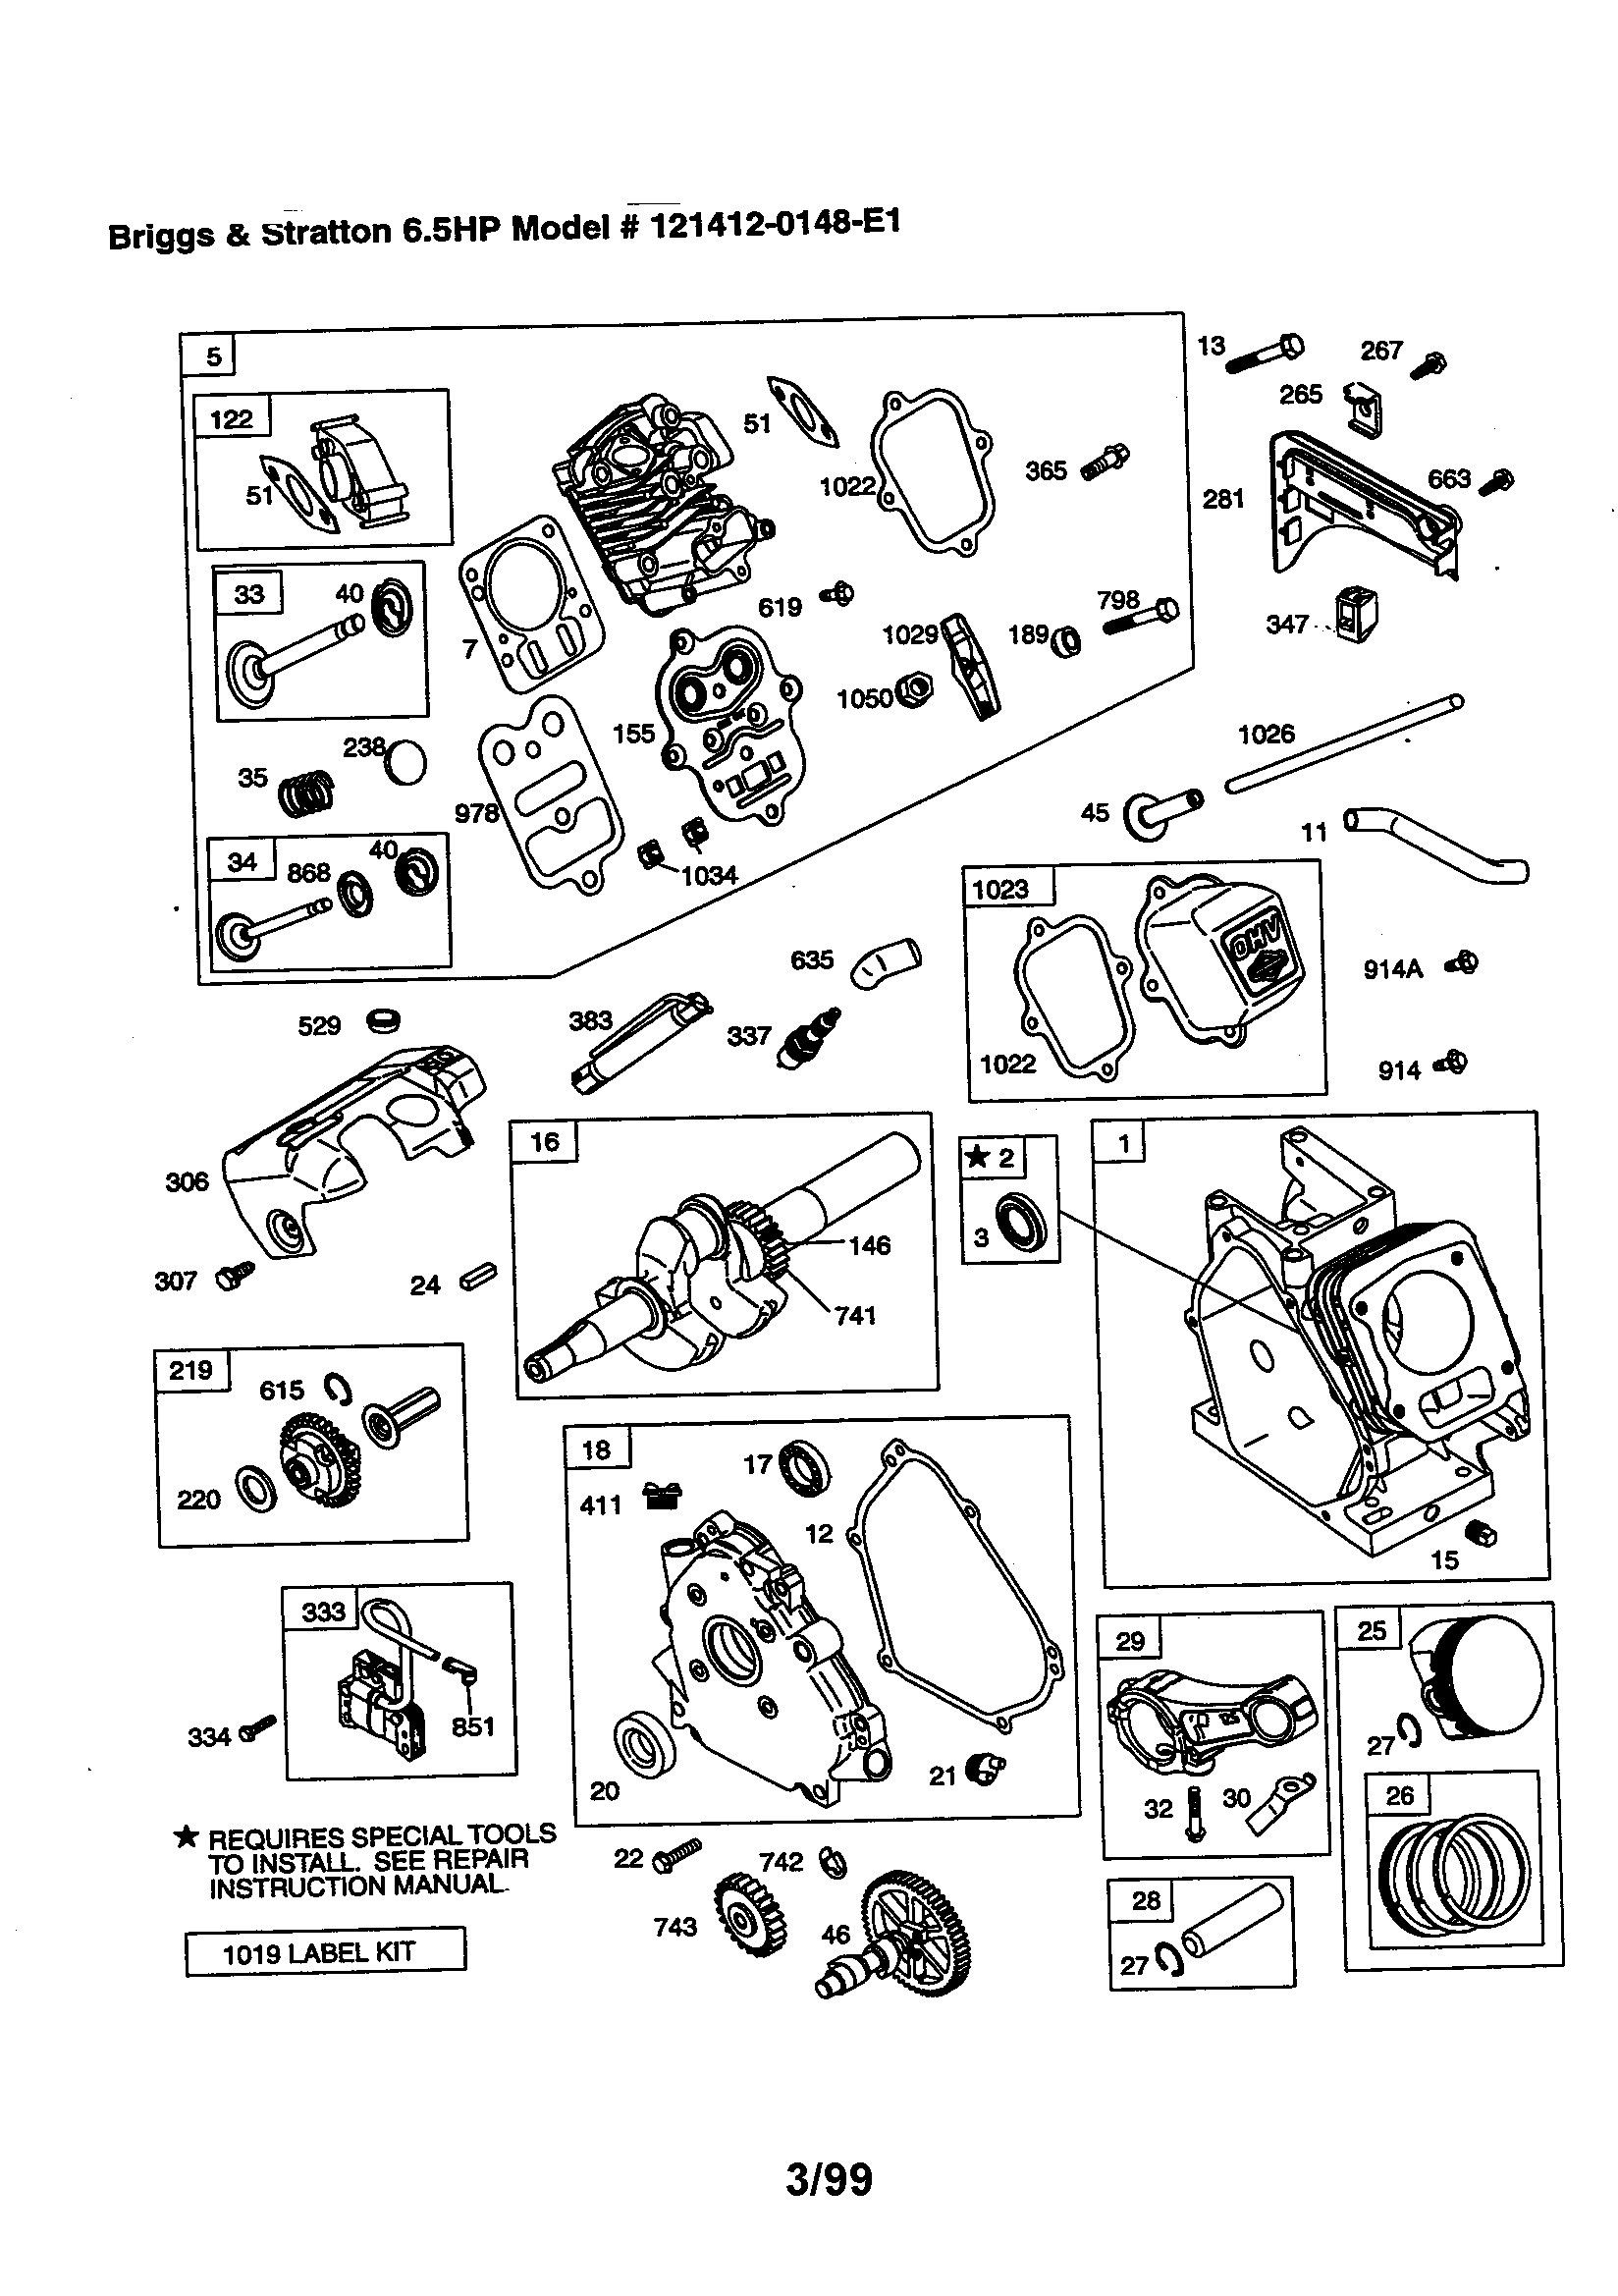 V Twin Engine Diagram In 2020 Harley Davidson Engines Twins Harley Davidson